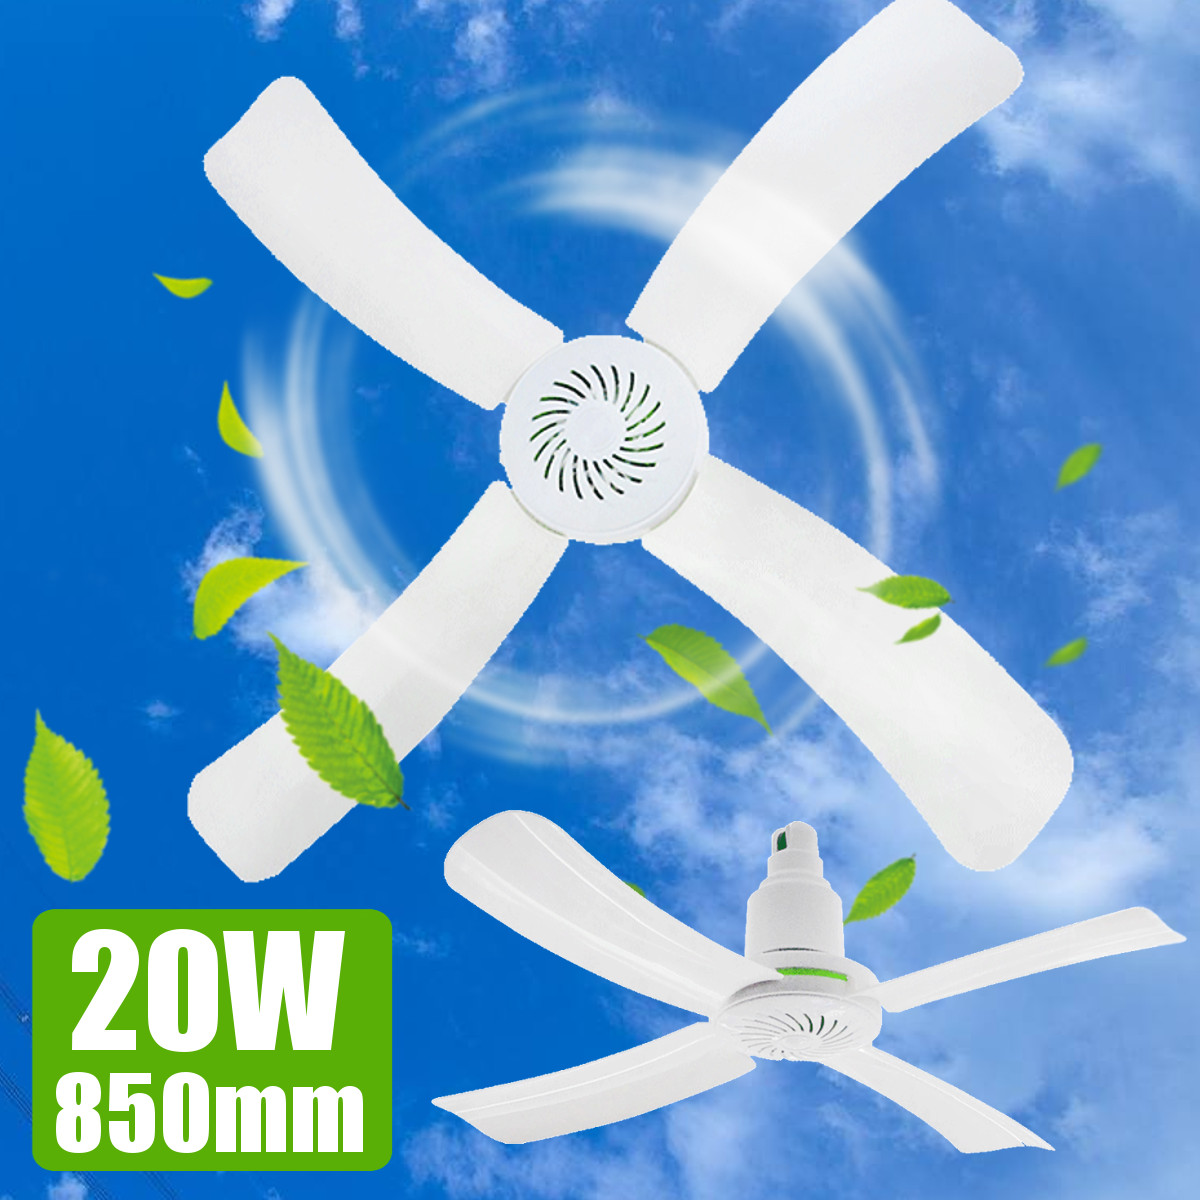 220V 20W Mini Ceiling Fan Portable Air Cooler Home Office Cooling Hanging Conditioner